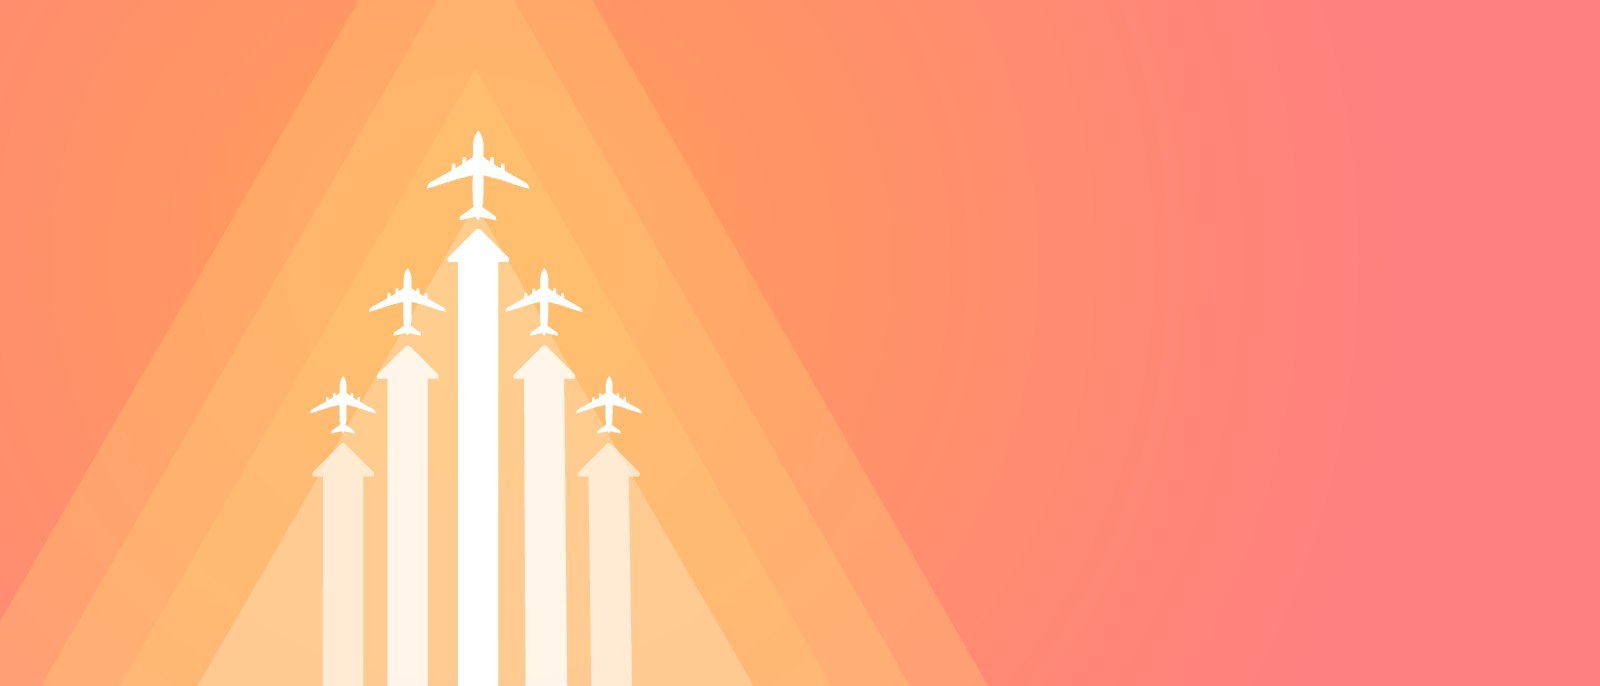 frequently asked questions about AircraftML